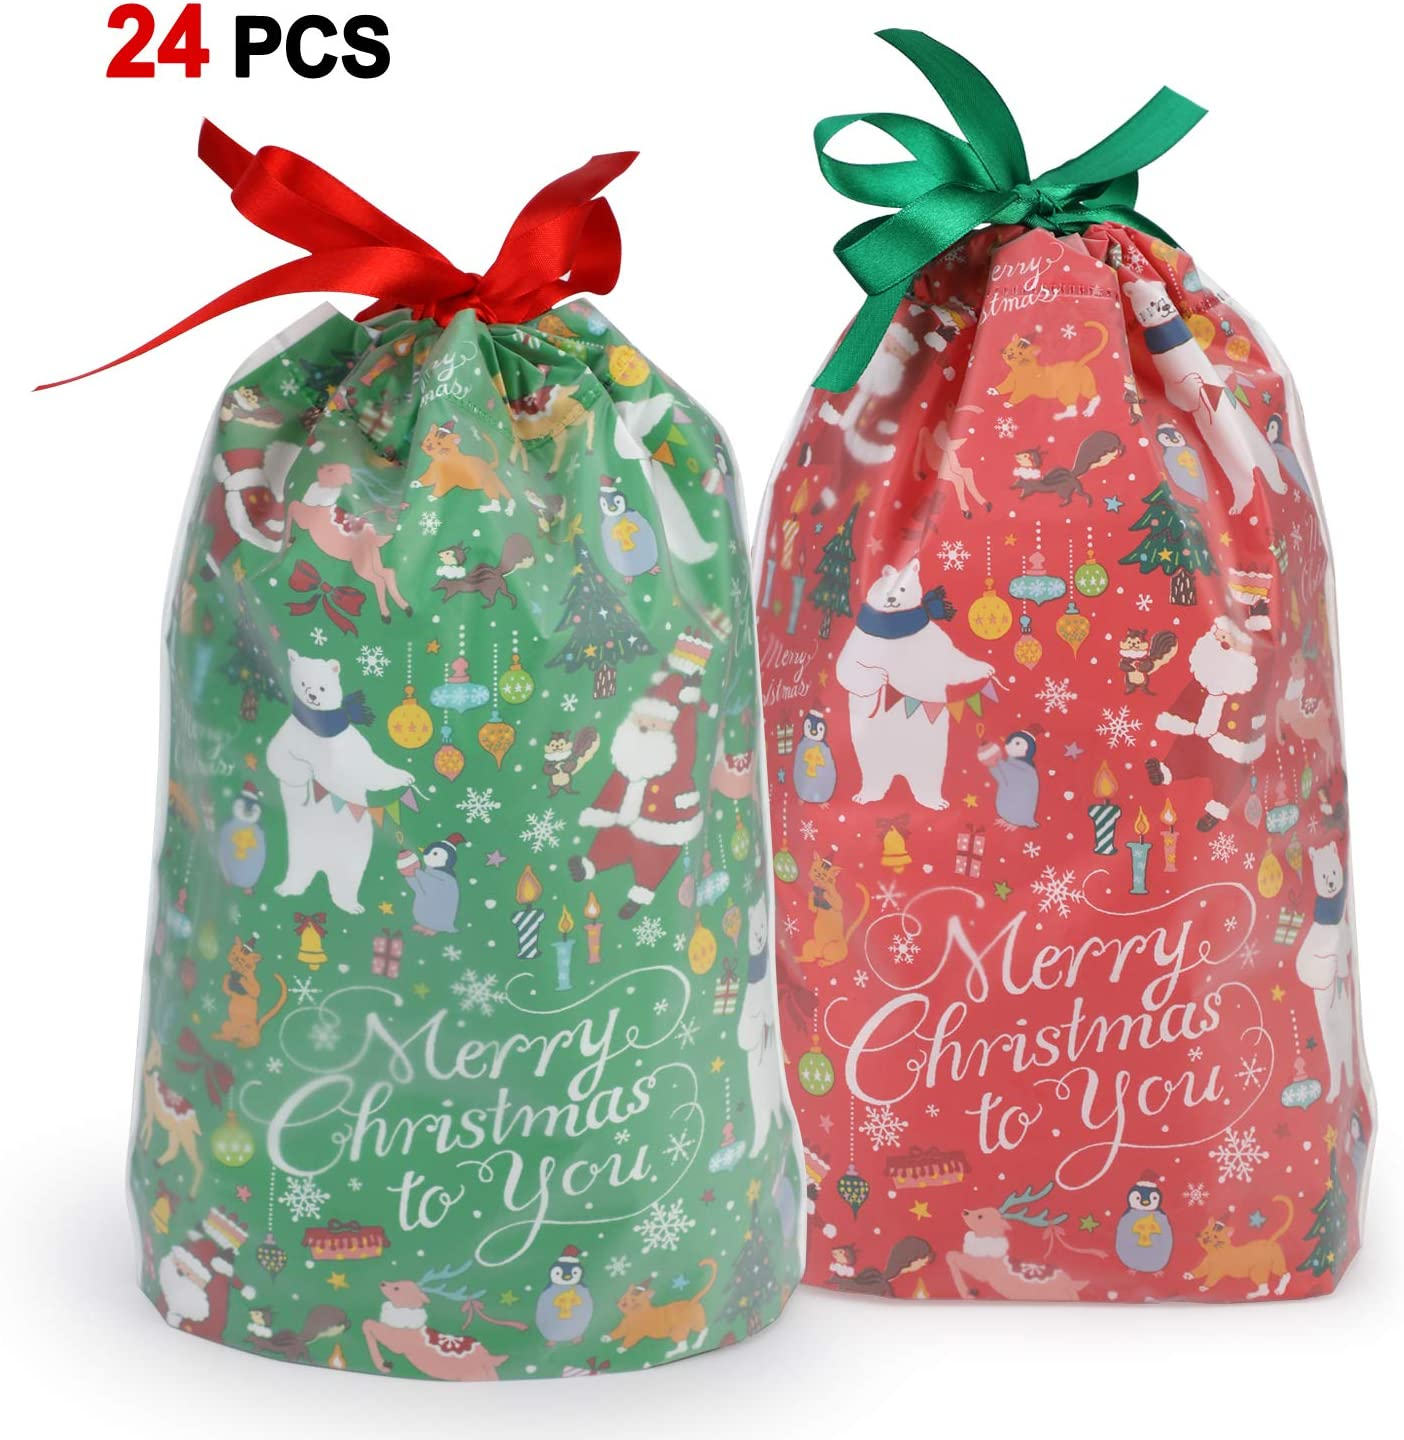 Konsait 24Count Christmas Party Bags, Christmas Drawstring Gift Bags, Christmas Goody Bags, Christmas Holiday Treats Bags Xmas Accessories Christmas Party Favors Supplies Candy Presents Gift Wrapping